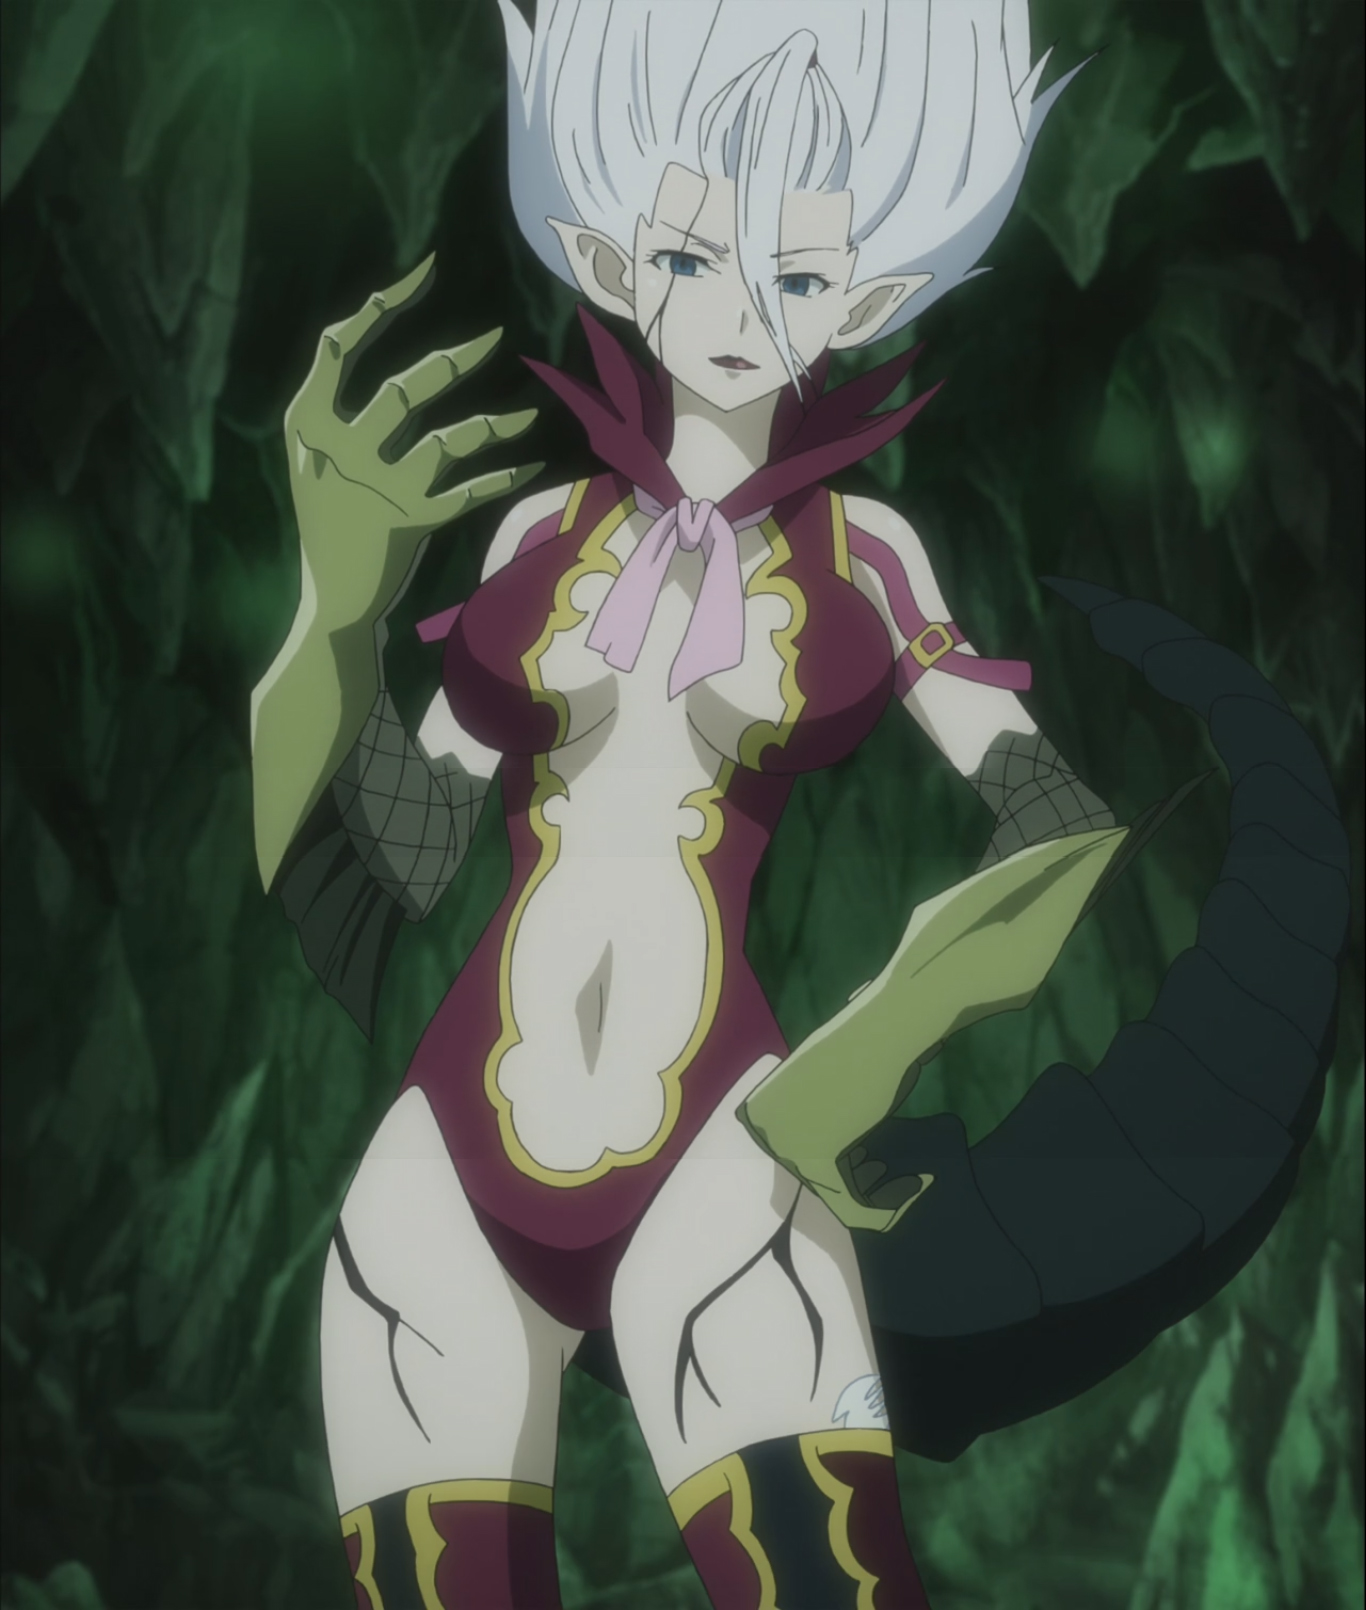 Mirajane S Satan Soul Form Daily Anime Art Song that plays when mirjane goes into satan soul against freed all credits go to their respectfull owners song is taima gekisen anime is fairytail. mirajane s satan soul form daily